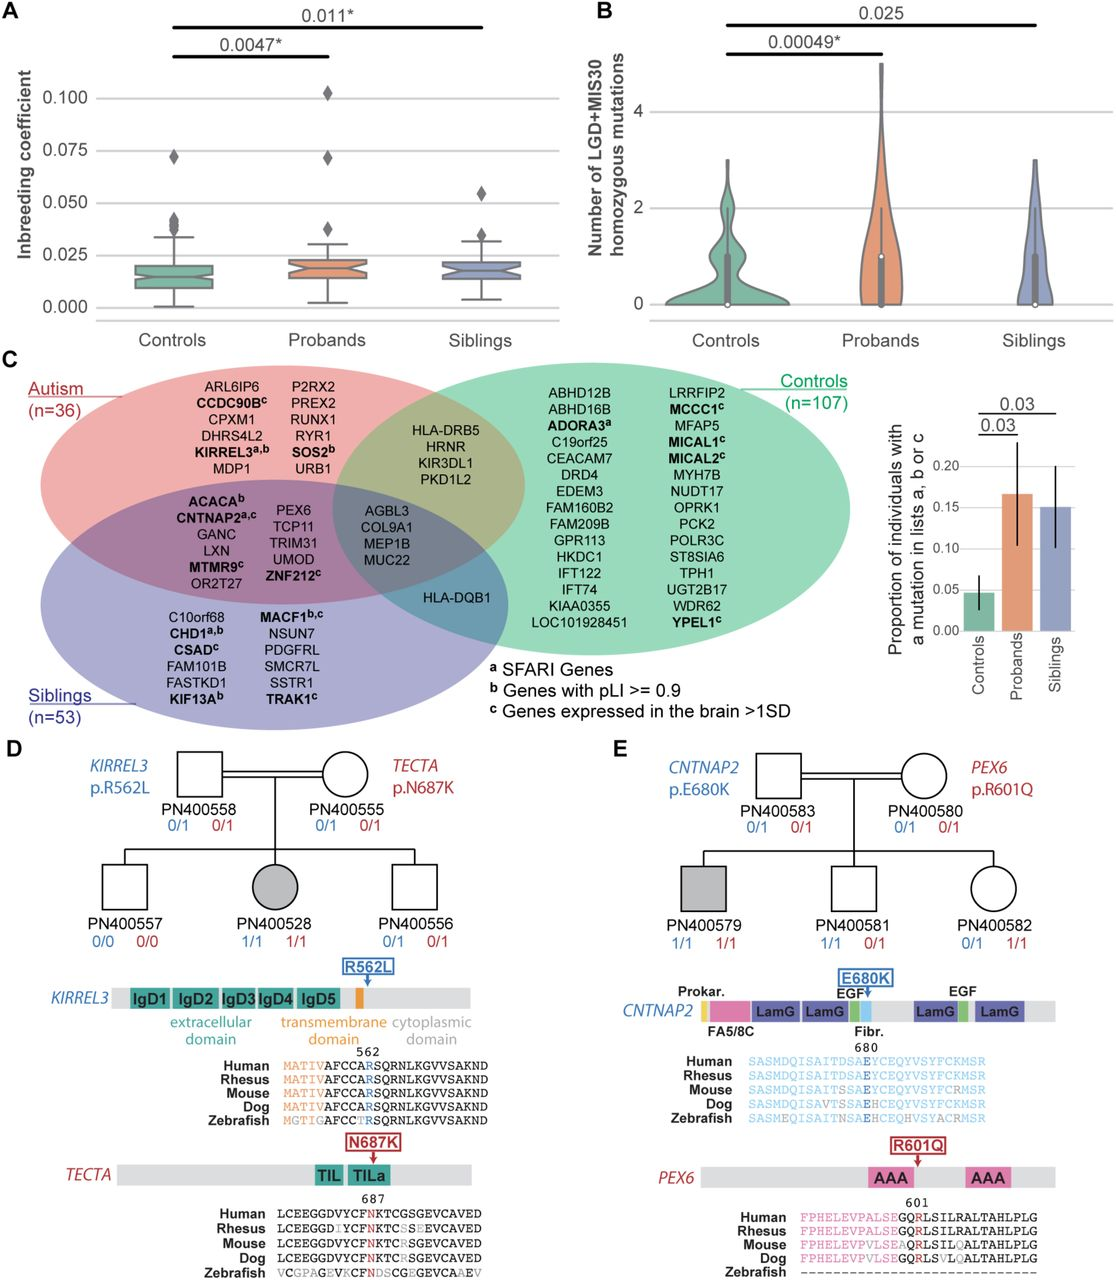 Both rare and common genetic variants contribute to autism in the